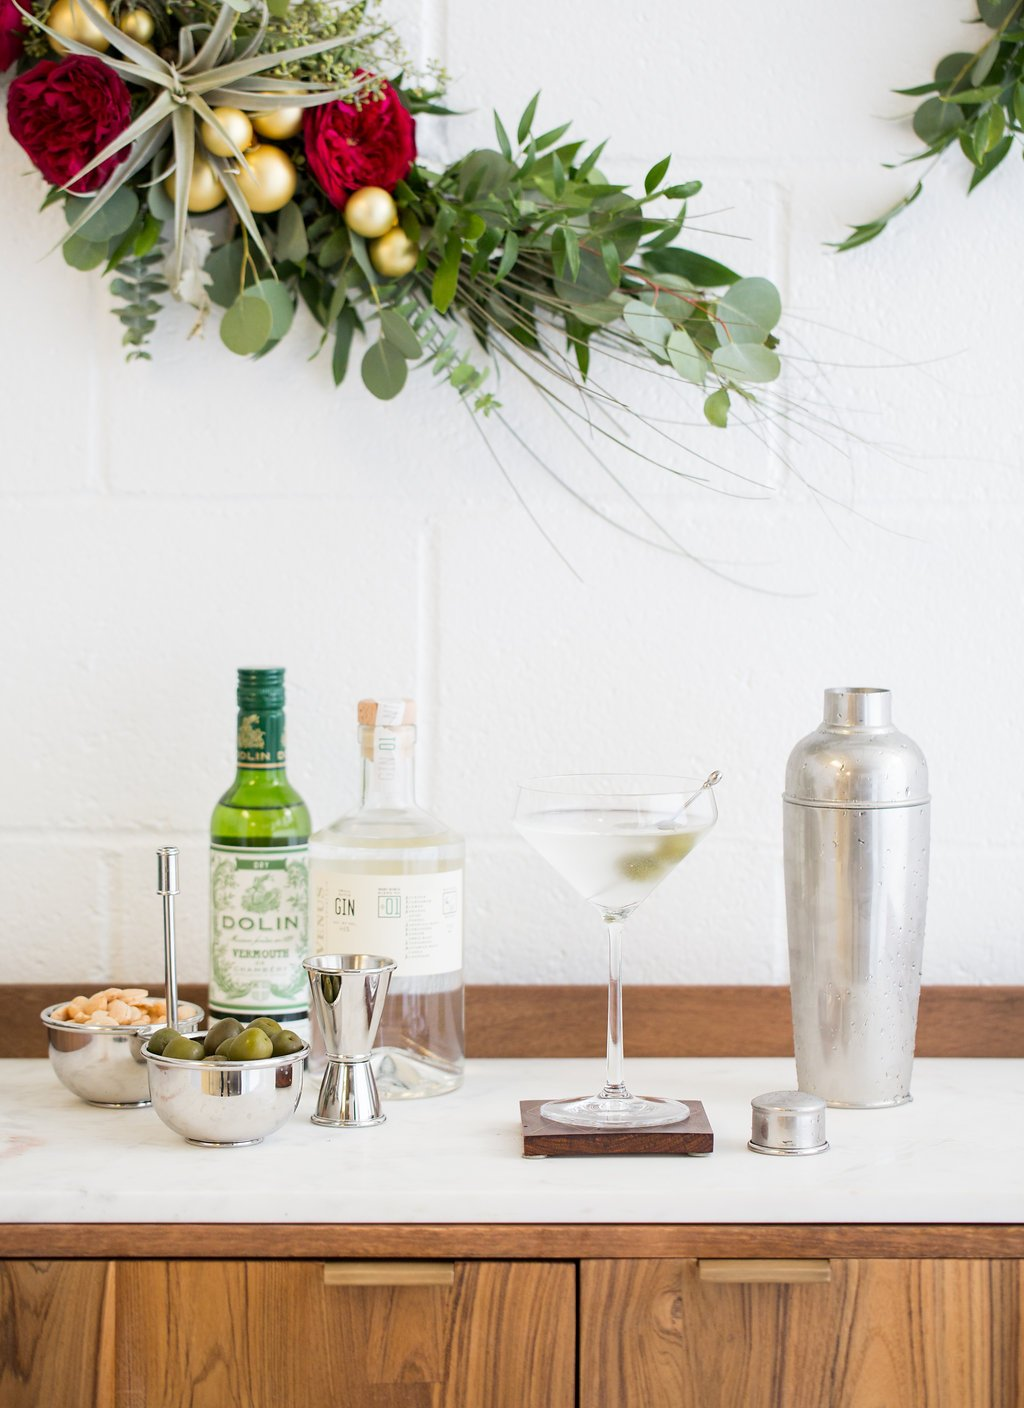 martini ingredients on top of a wooden cabinet beneath a wreath on a brick wall